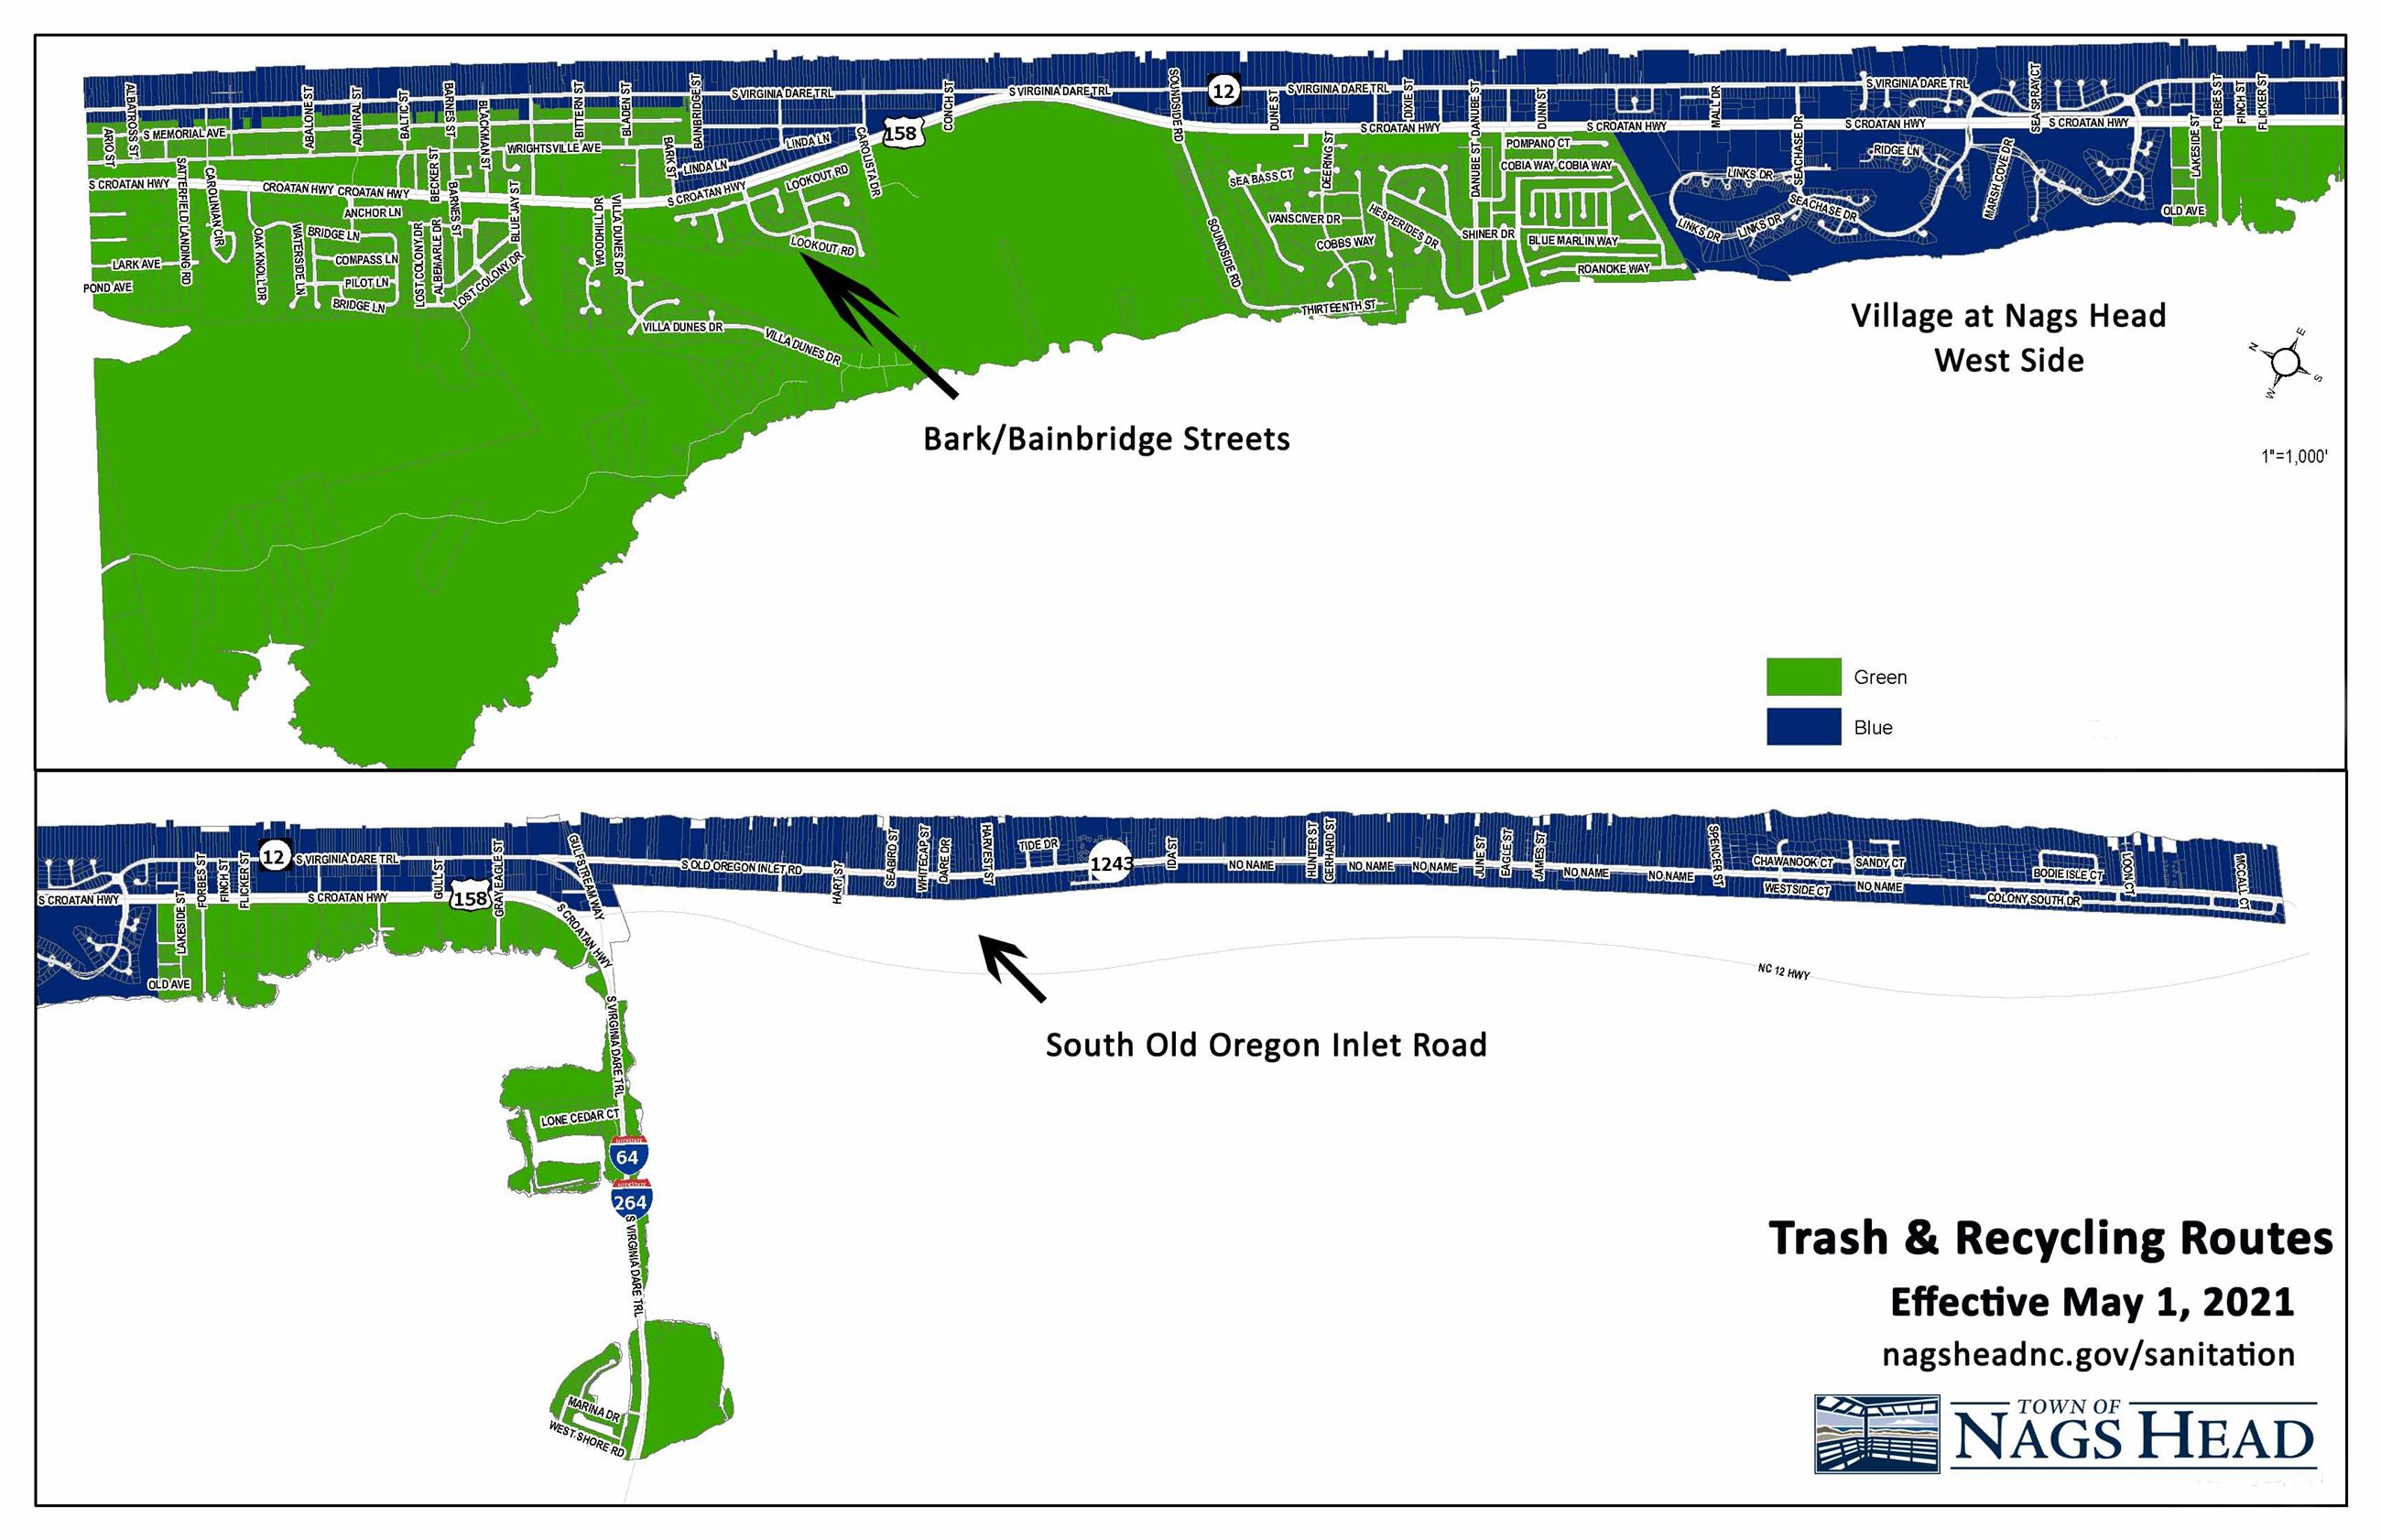 March 2021 Trash Routes Nags Head